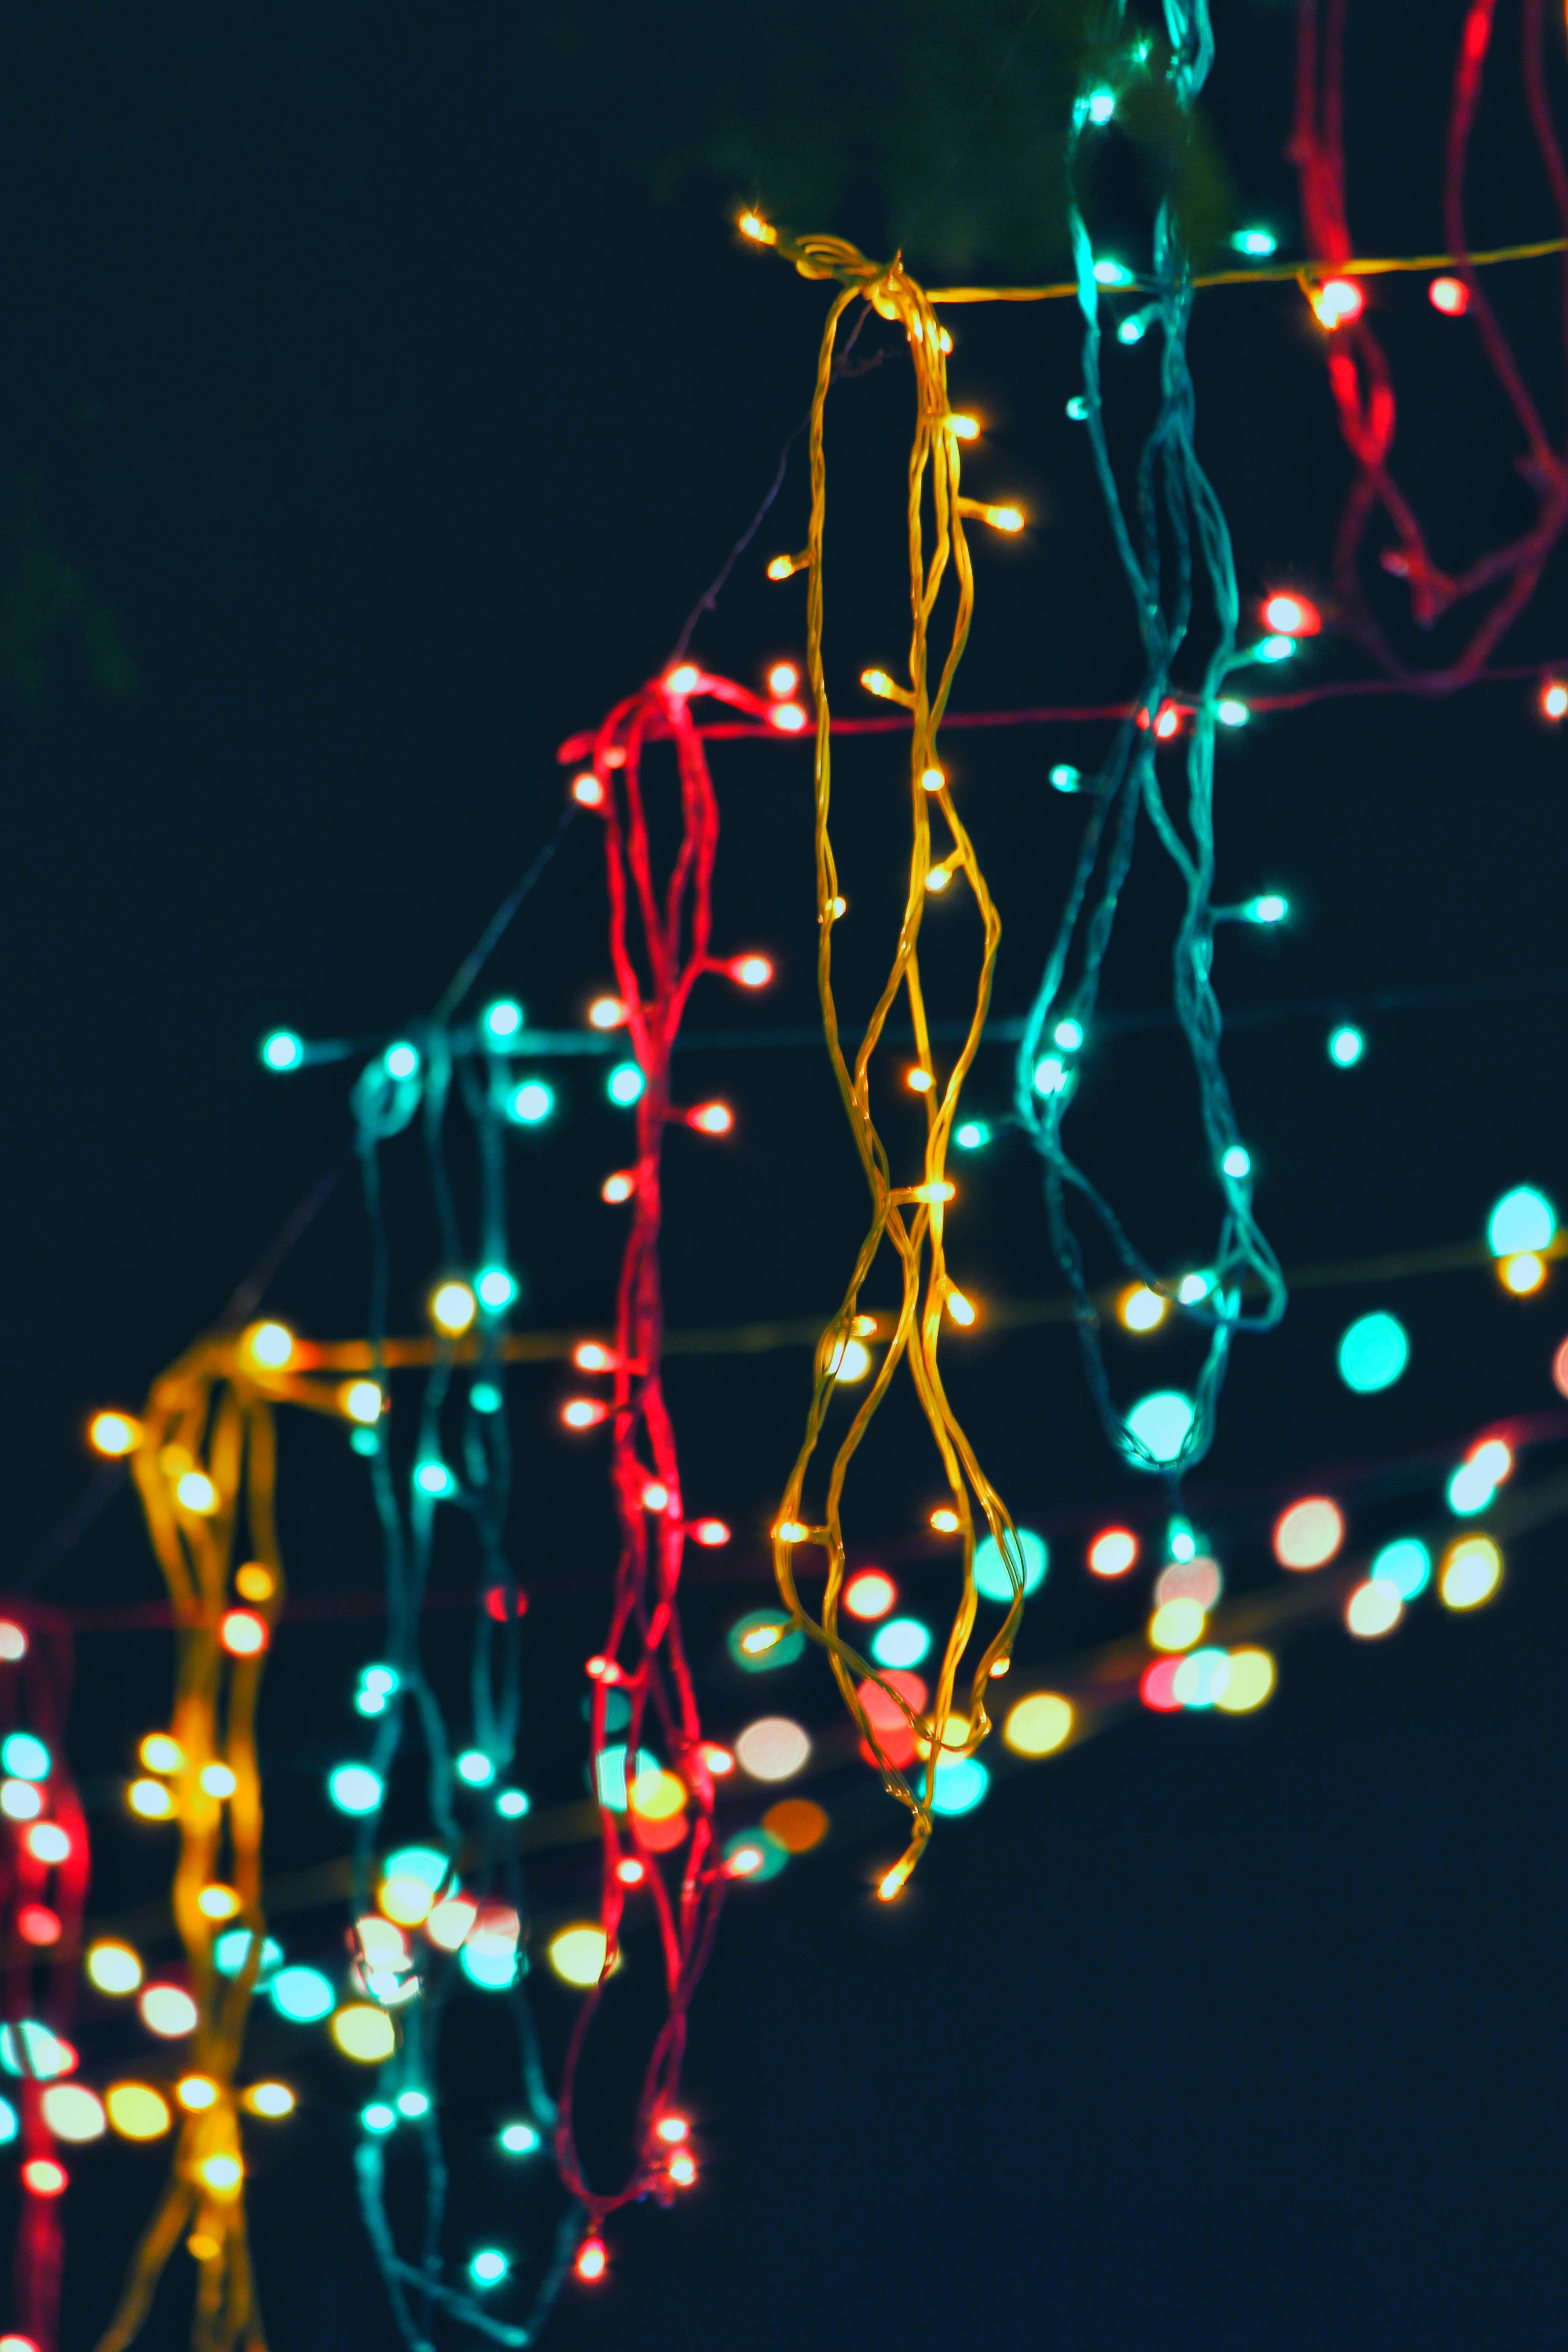 Iphone X Wallpaper Hd 4k Close Up Photography Of Man Holding Christmas Lights